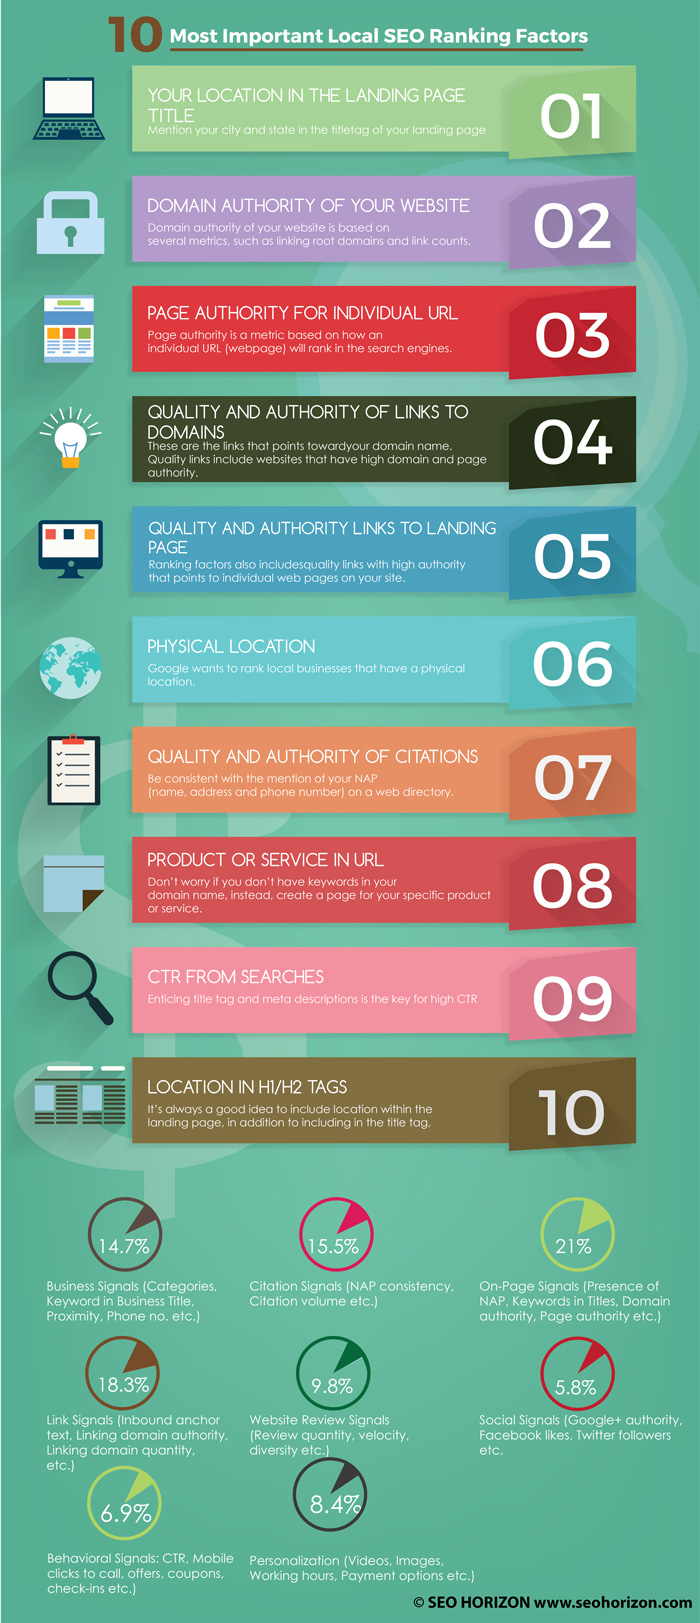 Top-10-Local-SEO-Ranking-Factors1